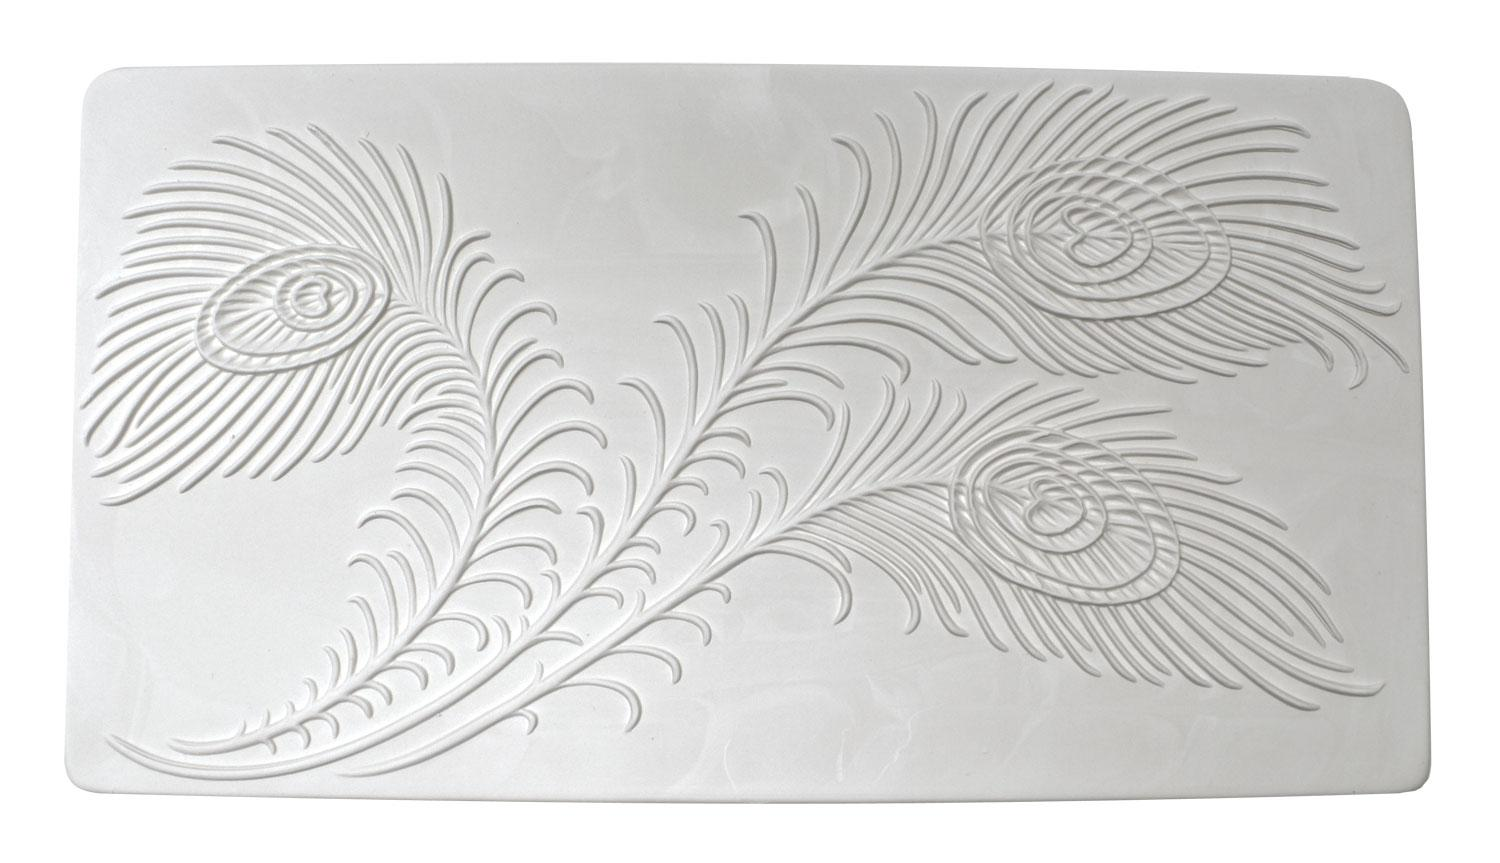 Peacock Feathers Texture Mold